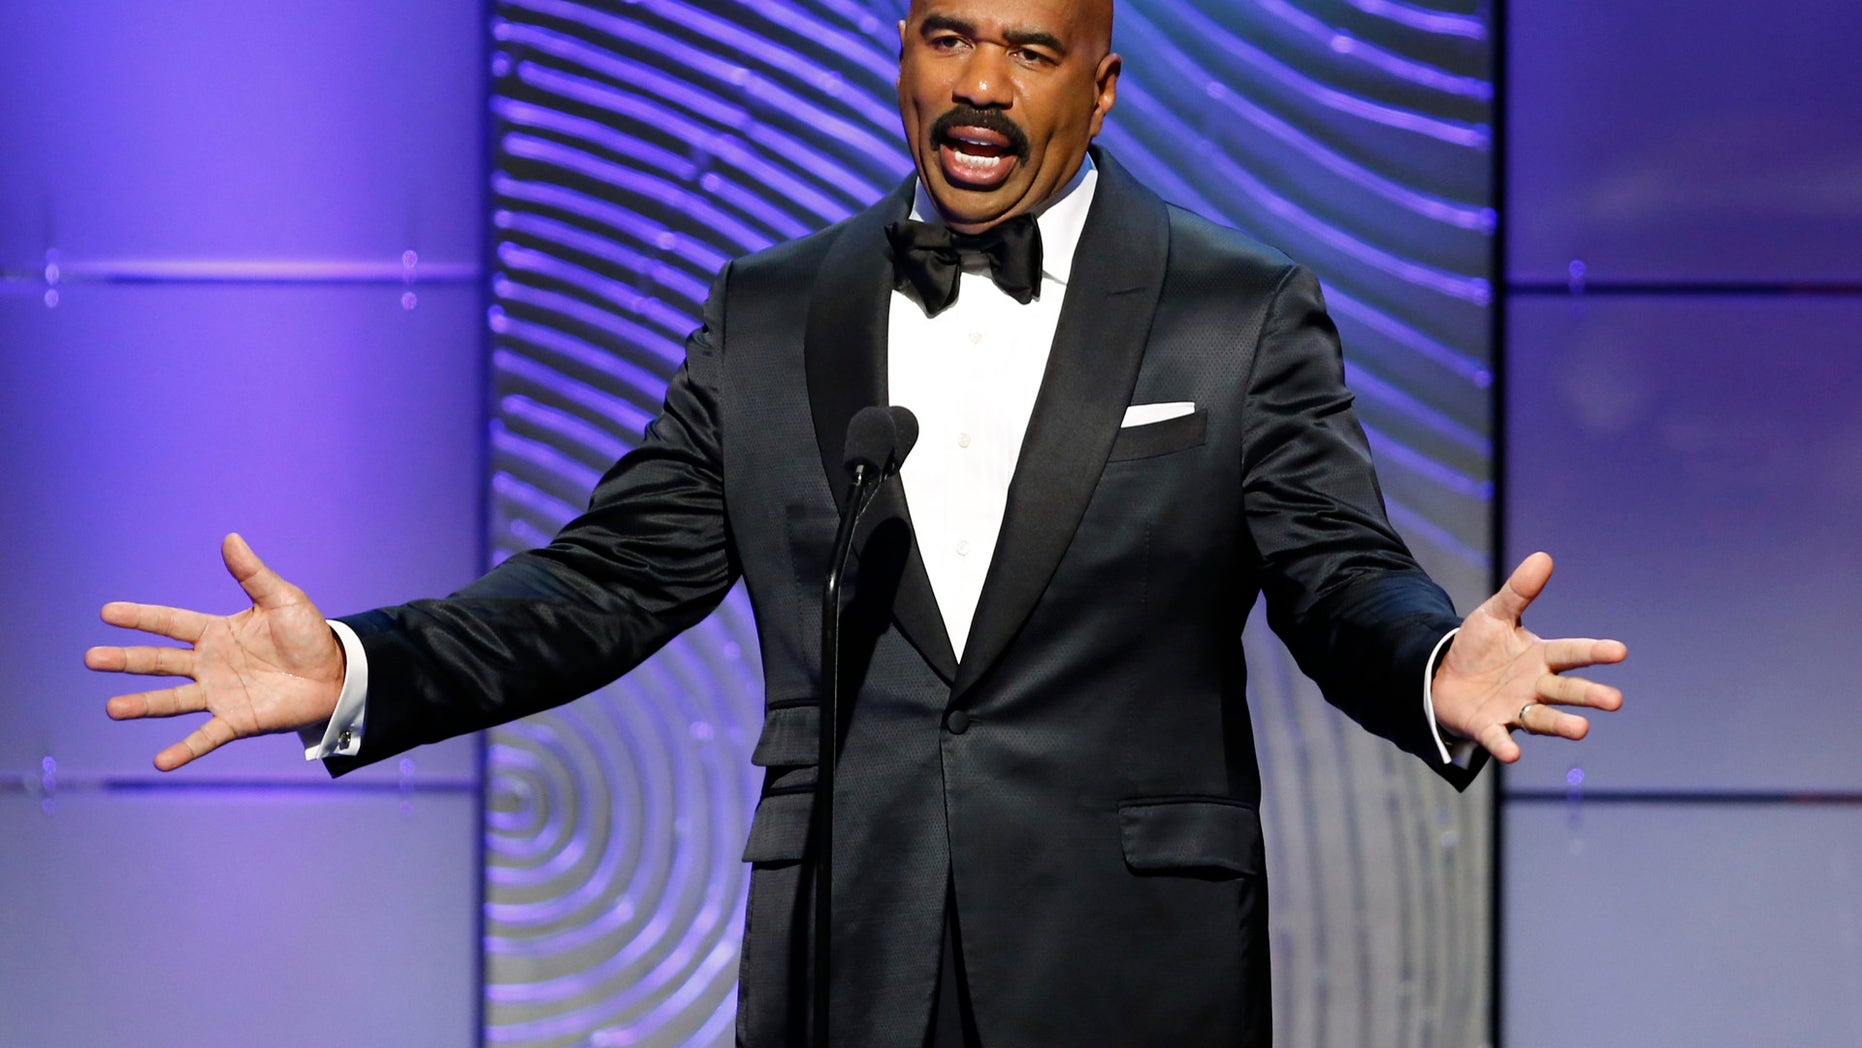 TV host Steve Harvey presents the outstanding morning program award during the 40th annual Daytime Emmy Awards in Beverly Hills, California June 16, 2013. REUTERS/Danny Moloshok (UNITED STATES - Tags: ENTERTAINMENT) - RTX10QJ3